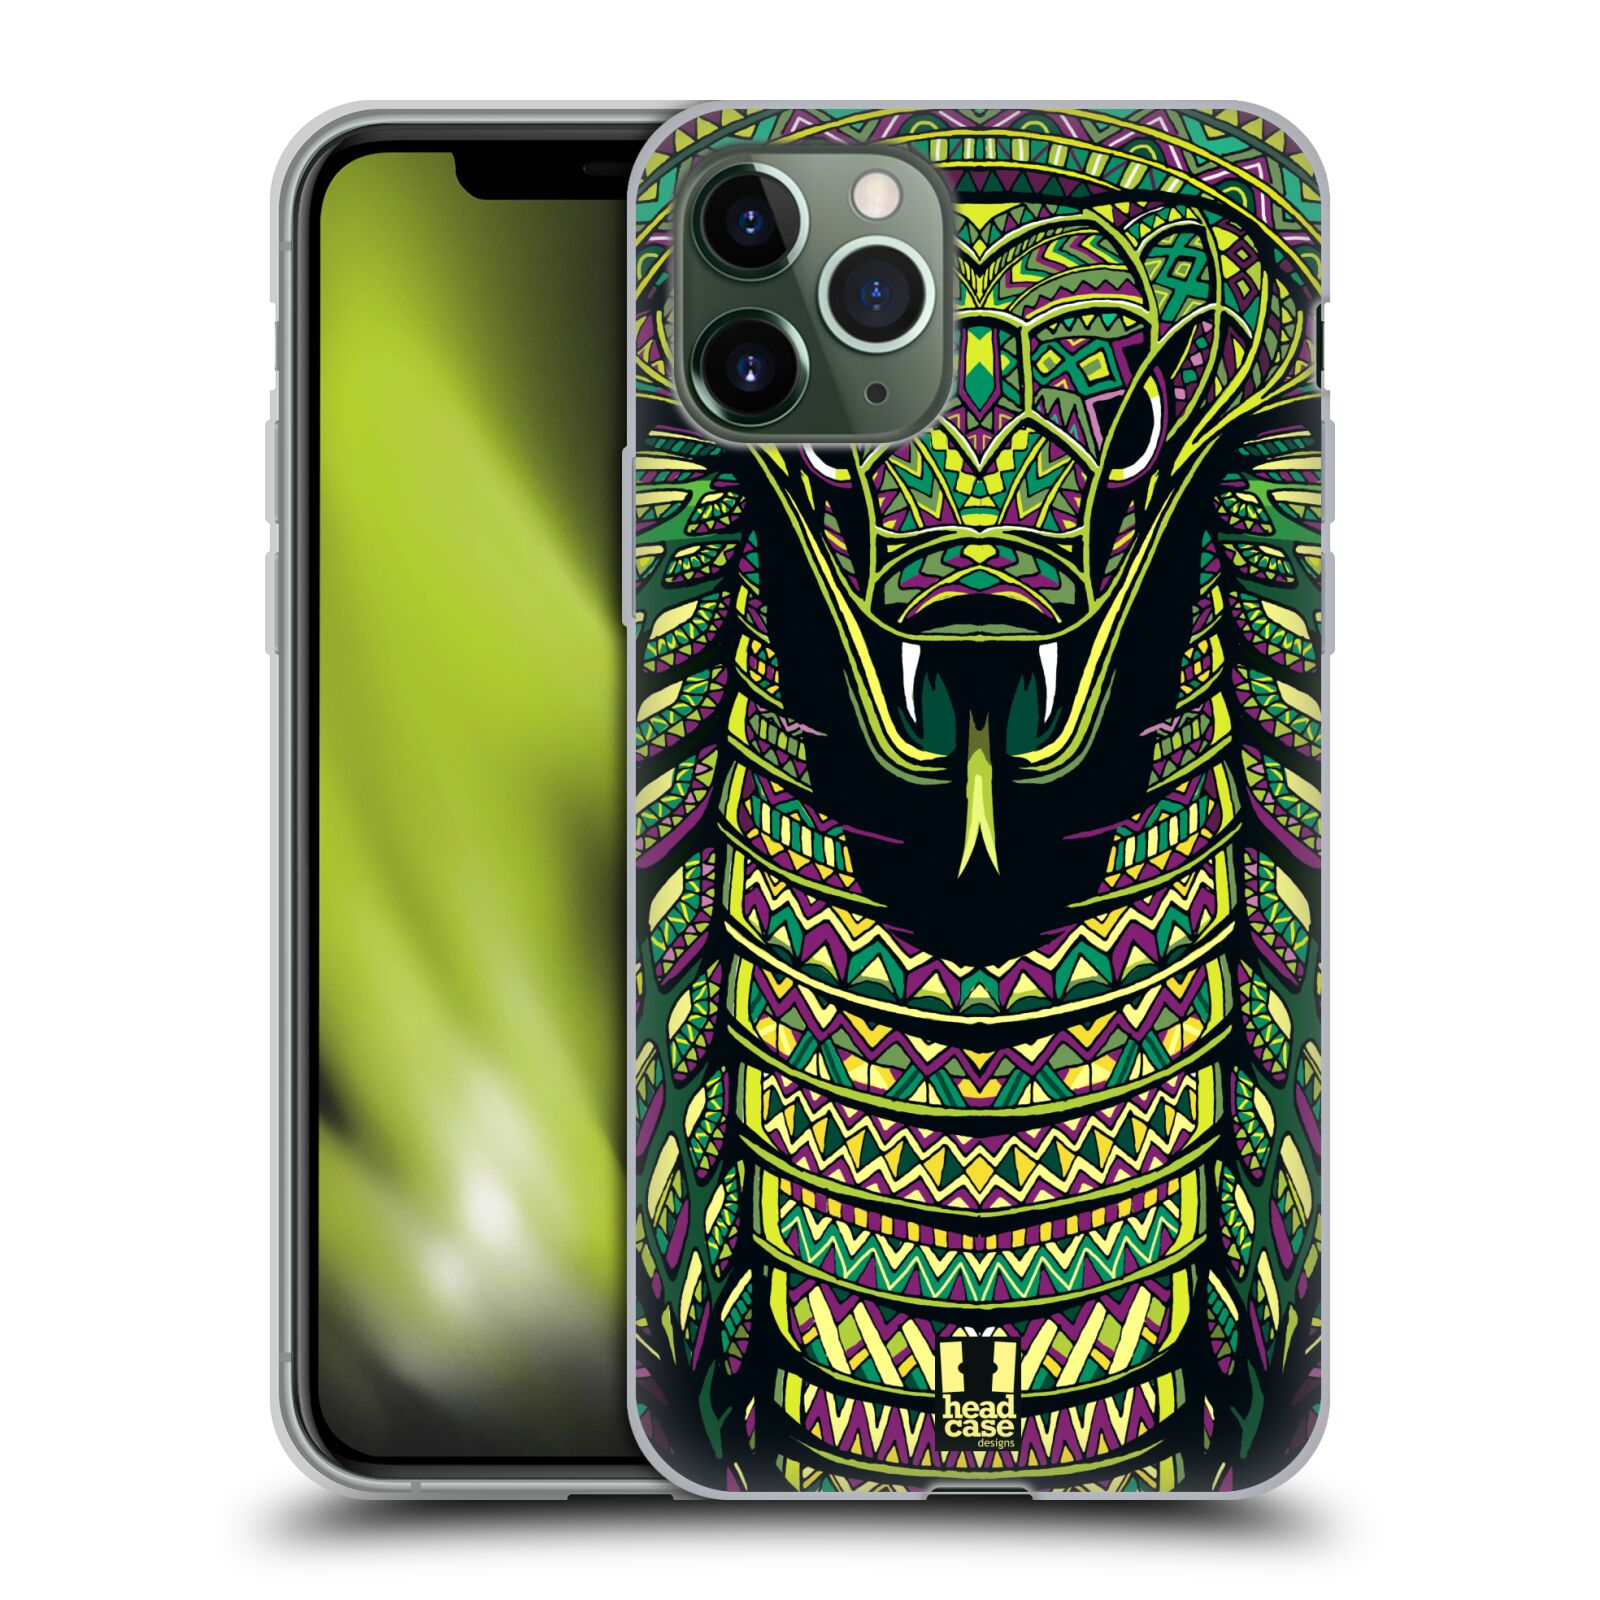 co je iphone | Silikonové pouzdro na mobil Apple iPhone 11 Pro - Head Case - AZTEC HAD